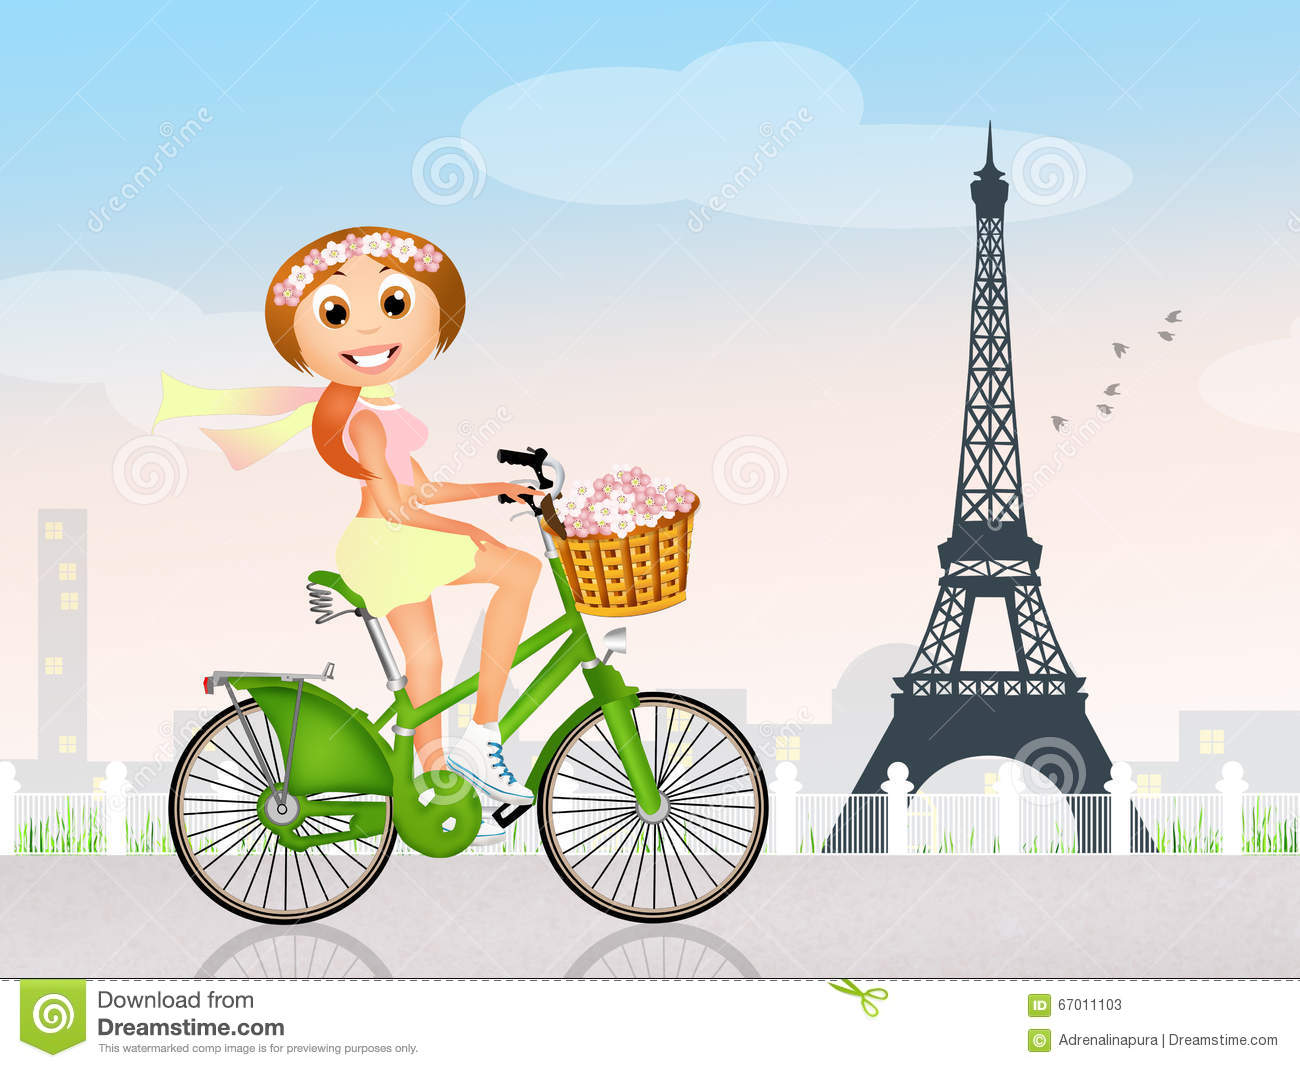 On bike in stock. Cycling clipart girl paris graphic library stock